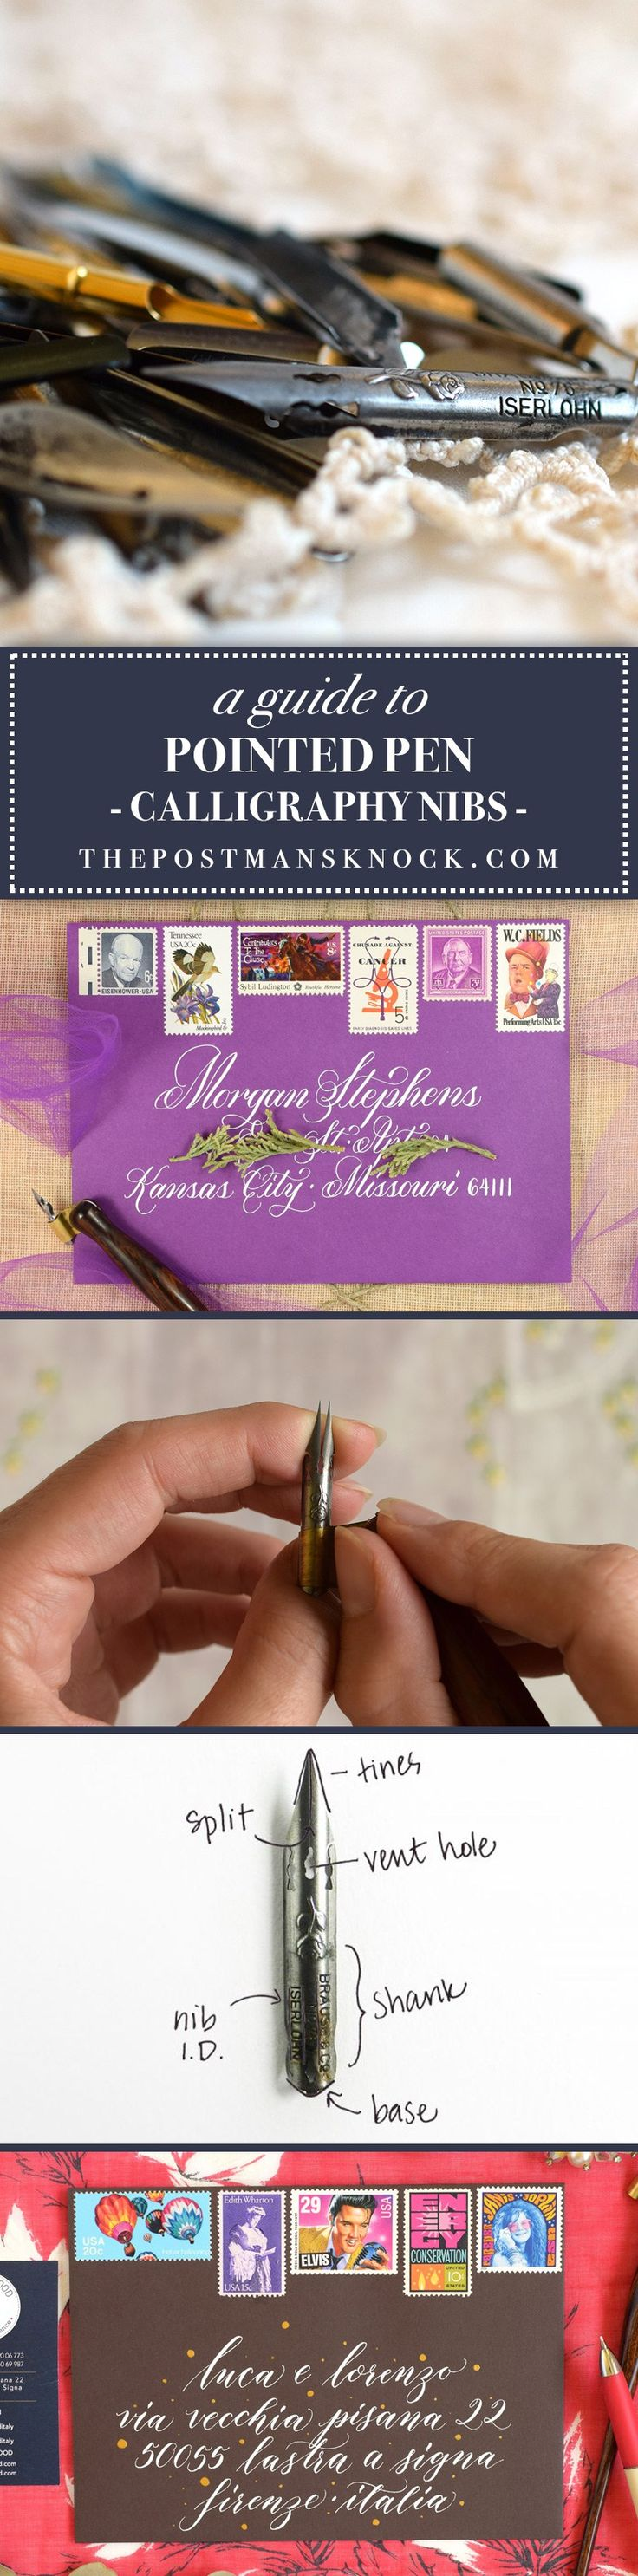 A Guide to Pointed Pen Calligraphy Nibs   The Postman's Knock